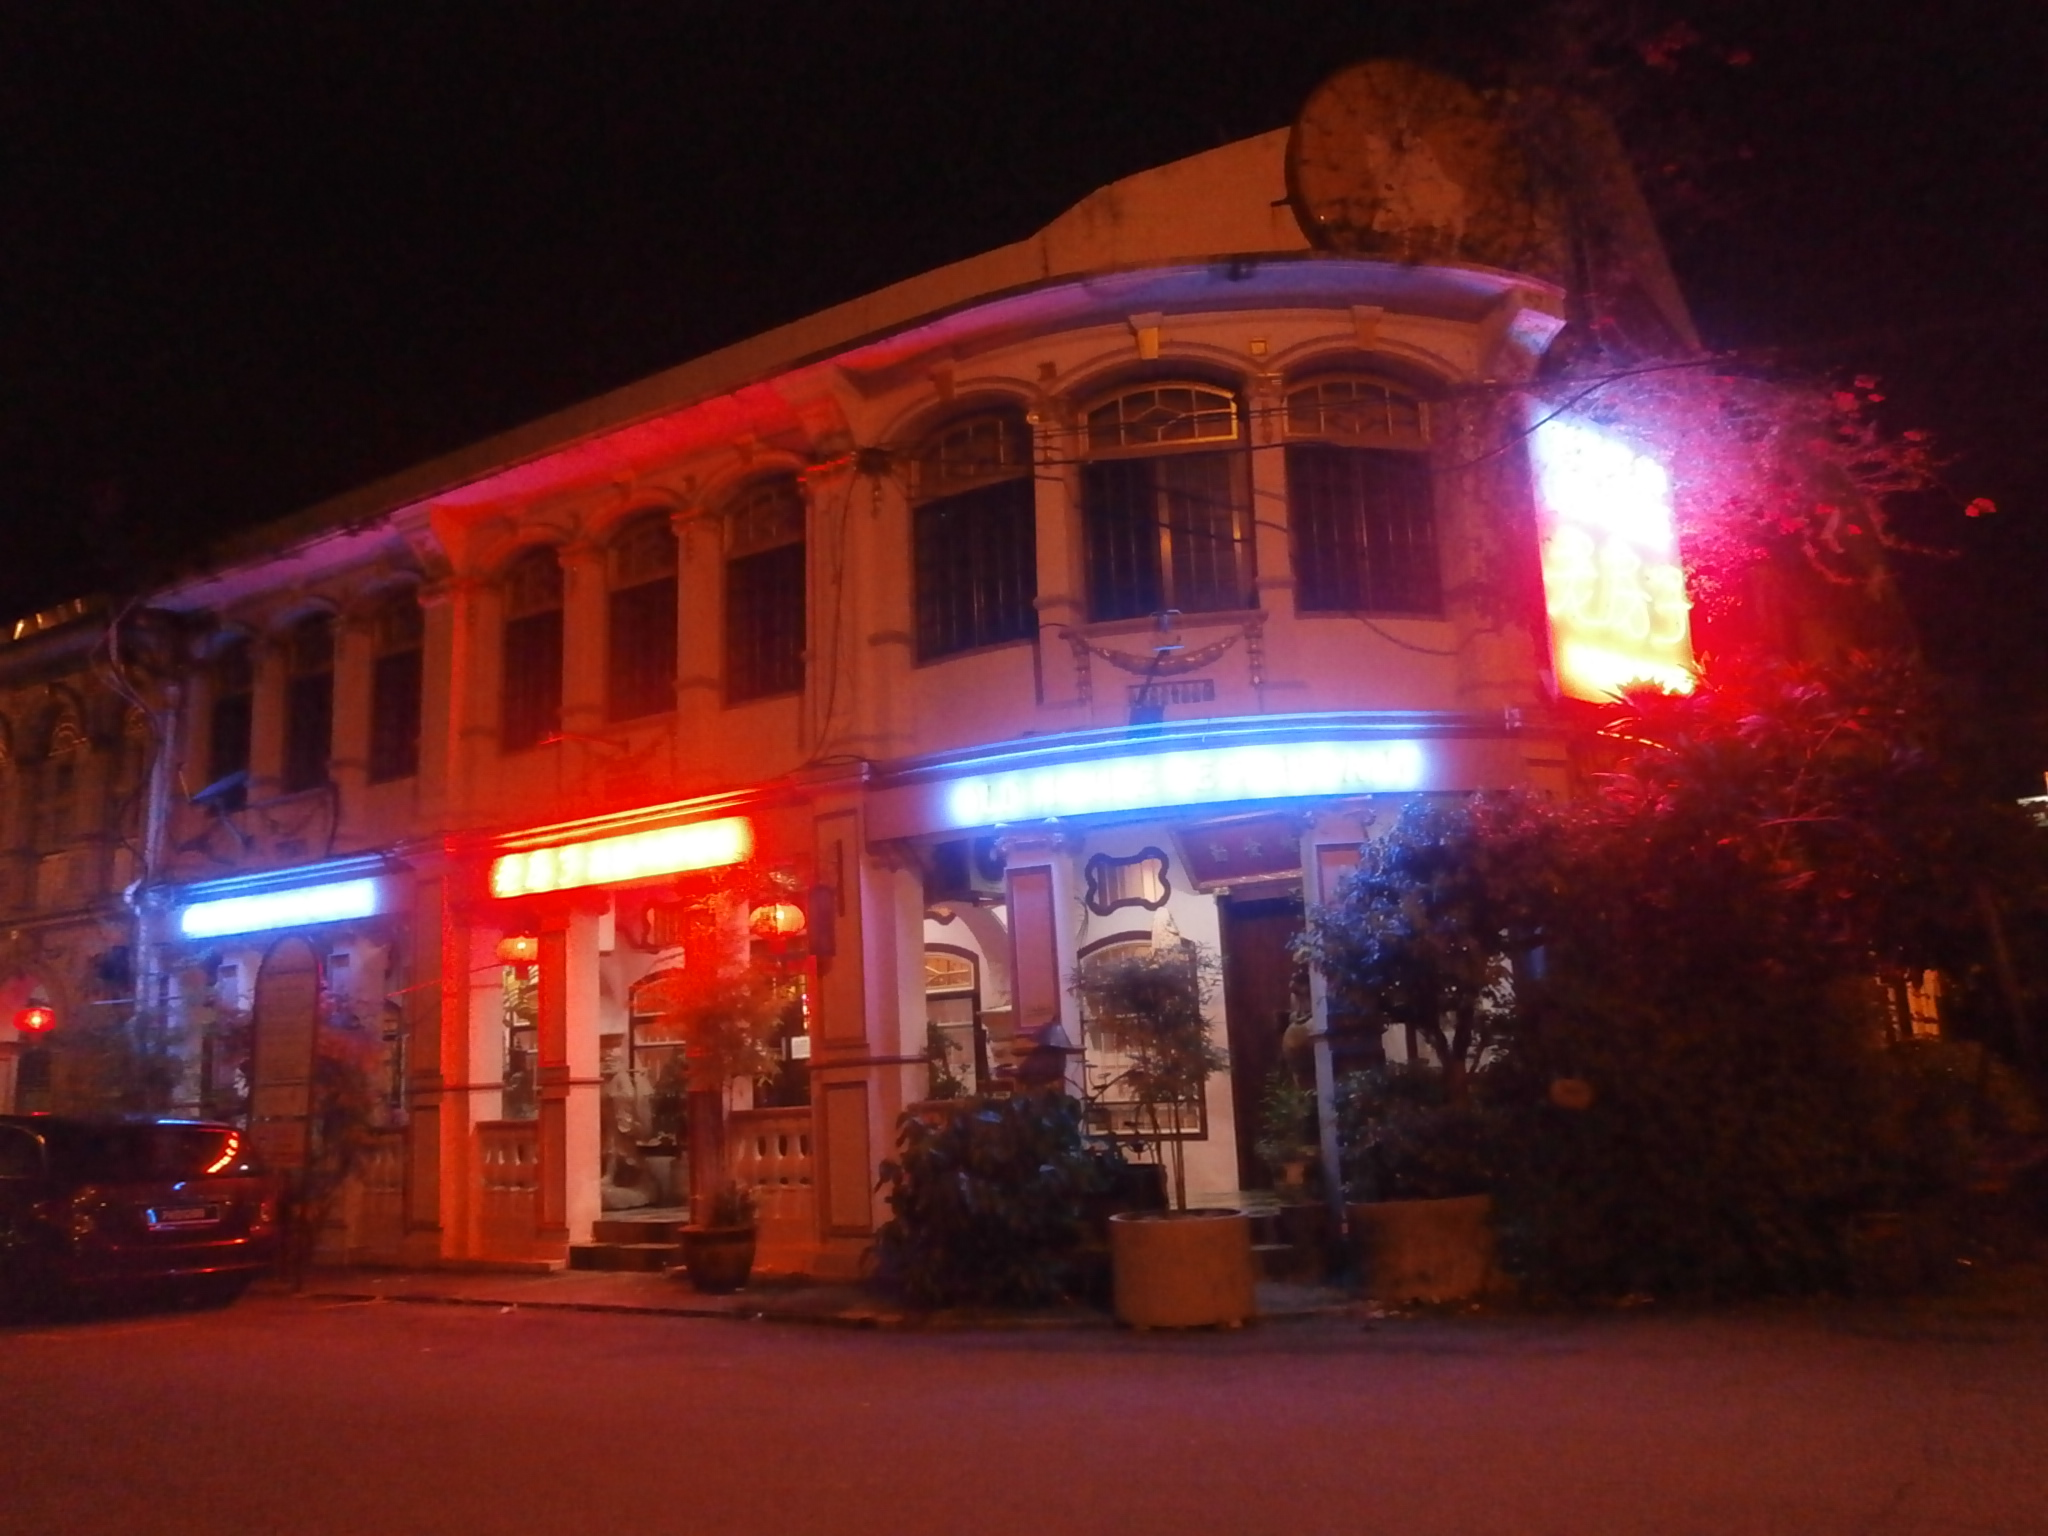 Night lights make this Old House Restaurant even more beautiful.